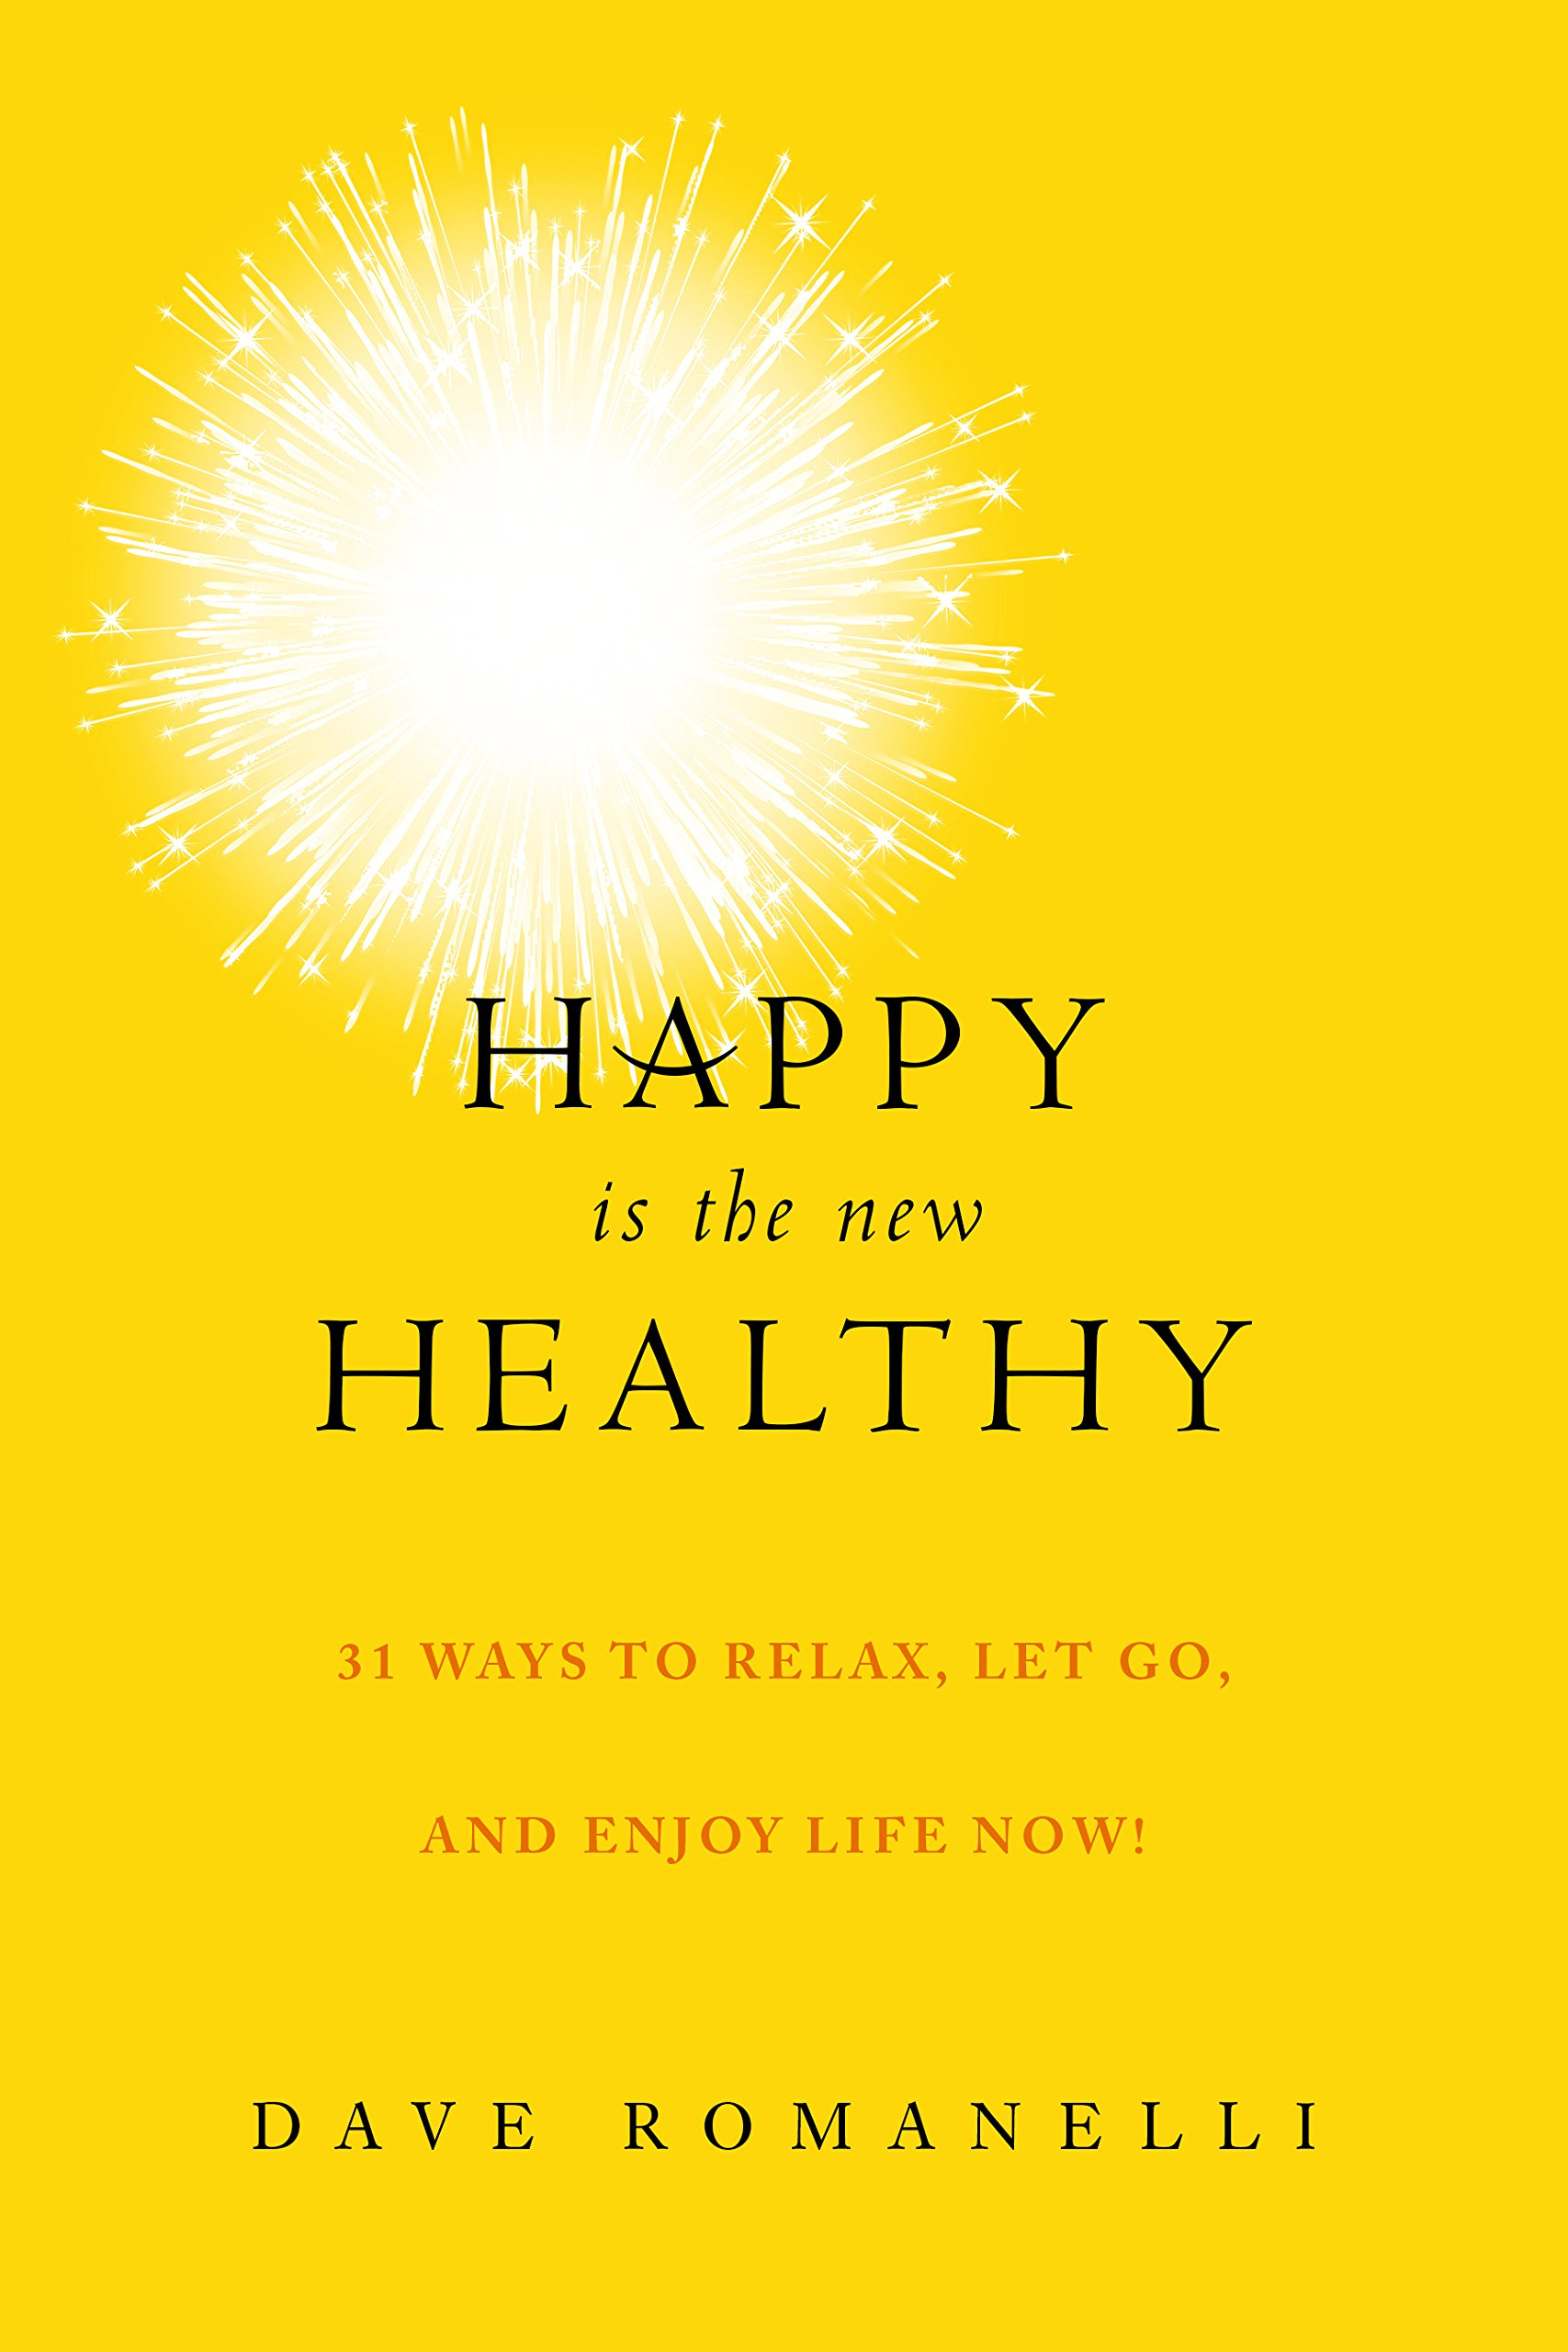 Happy Is The New Healthy: 31 Ways To Relax, Let Go, And Enjoy Life Now!:  Dave Romanelli: 9781629144986: Amazon: Books